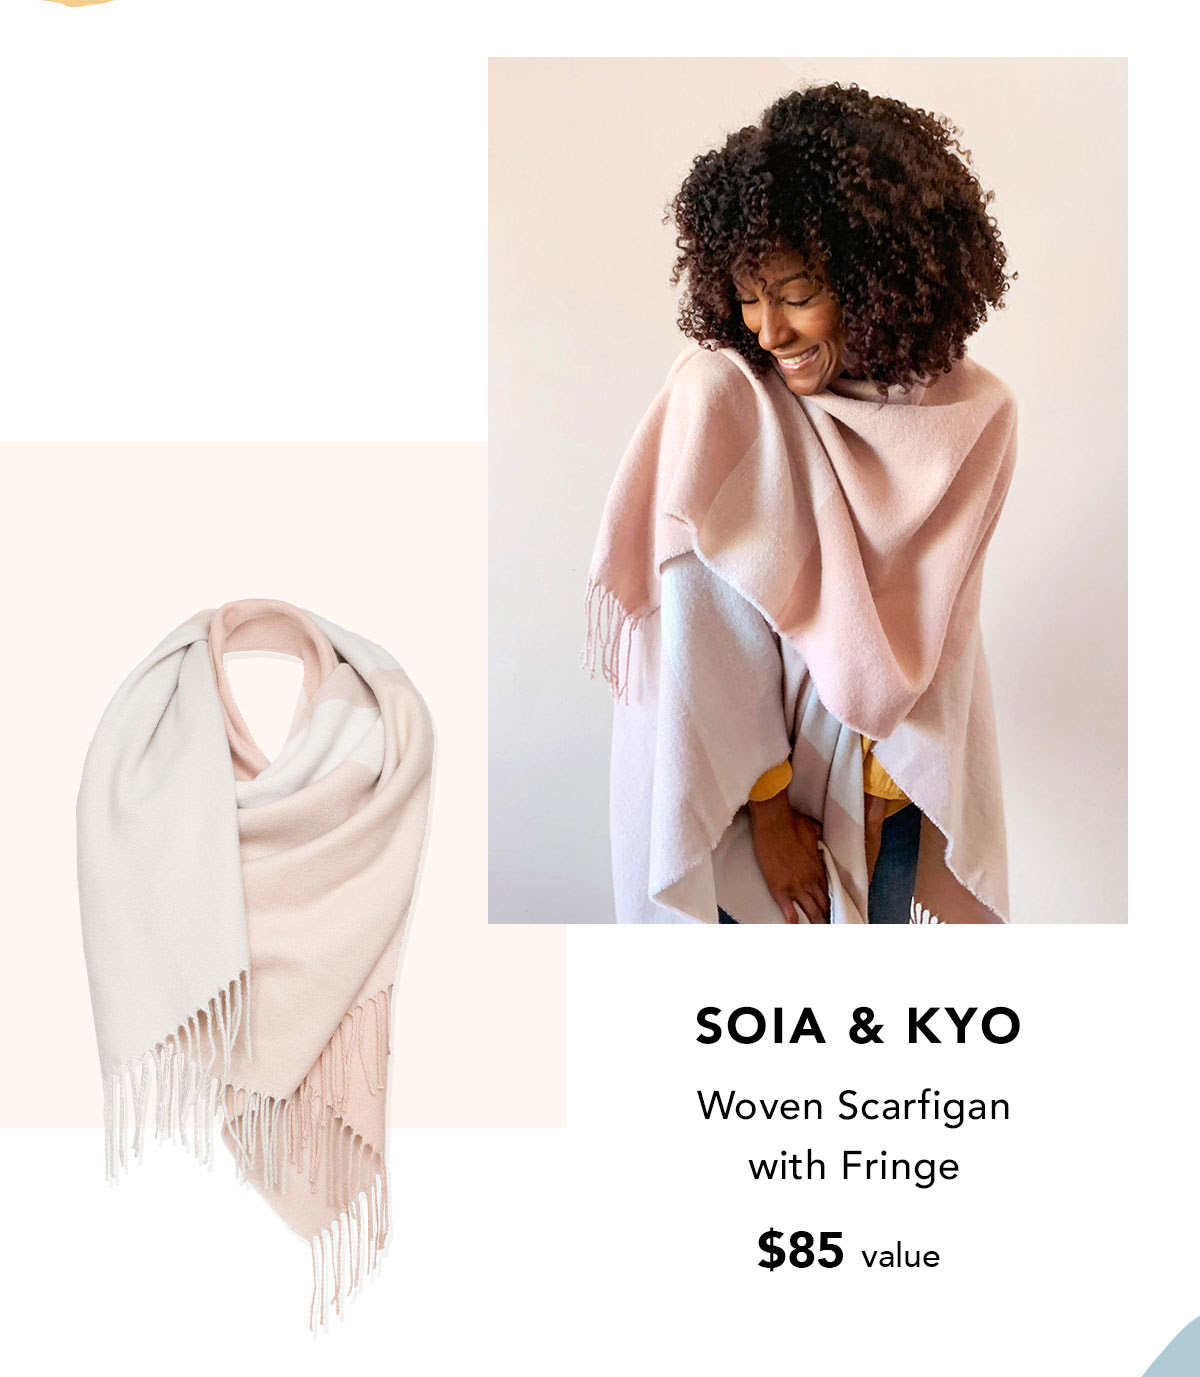 SOIA & KYO Woven Scarfigan with Fringe $85 value